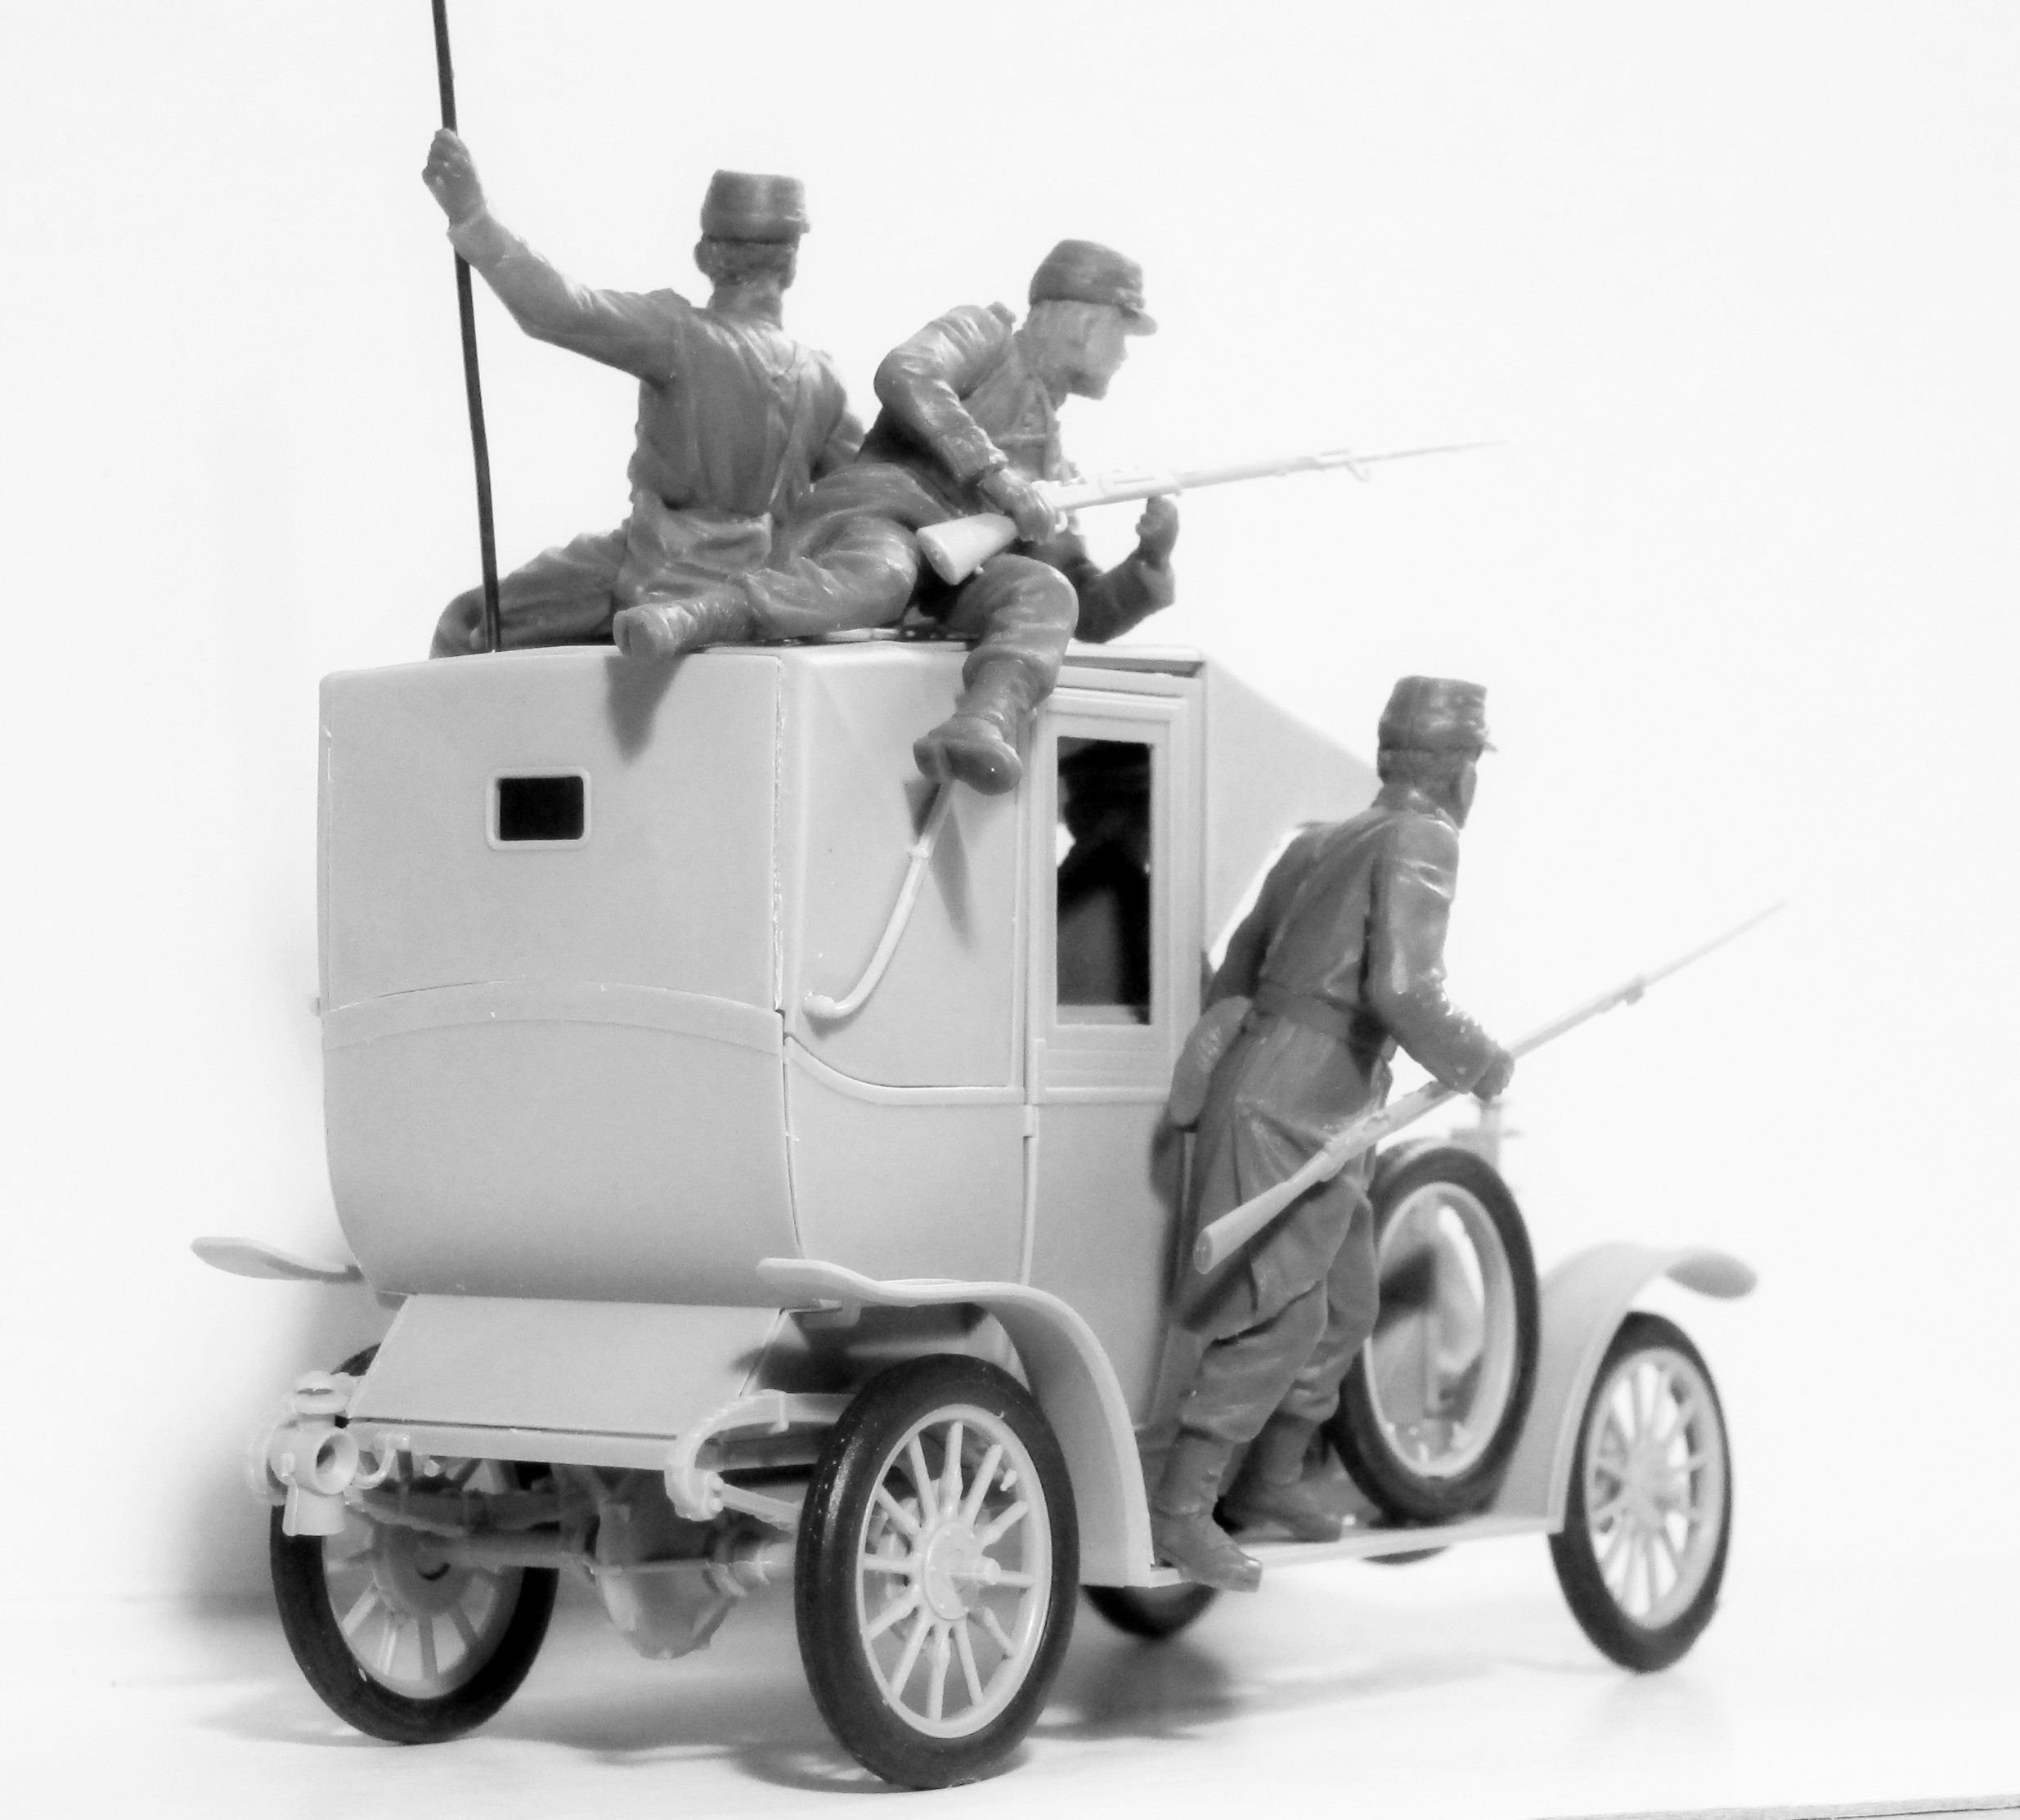 1/35 35705 Французская пехота на марше (1914 г.) \ French Infantry on the march (1914) (4 figures) (100% new molds)